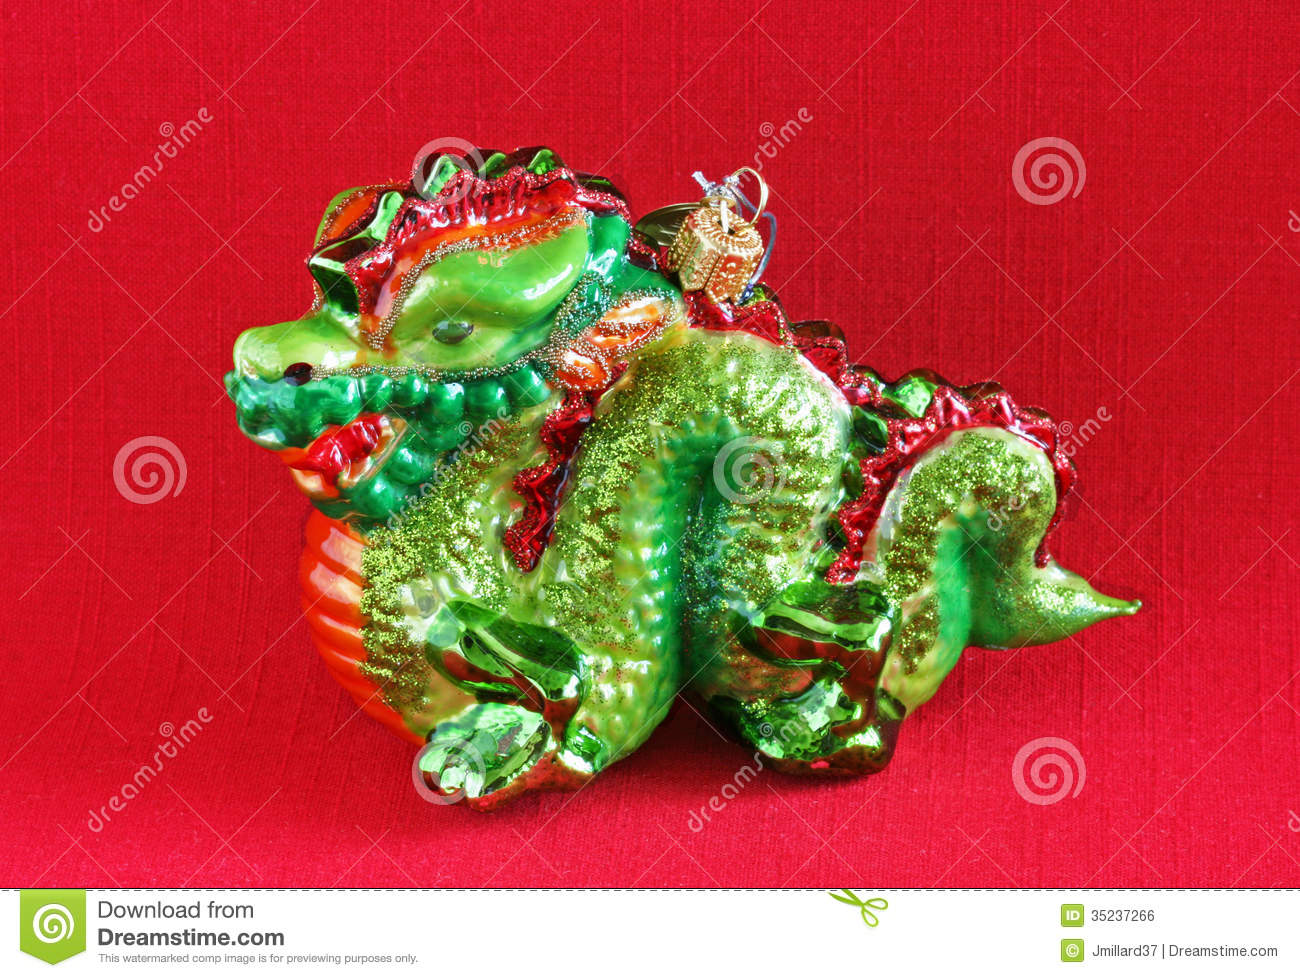 green dragon christmas ornament on red background